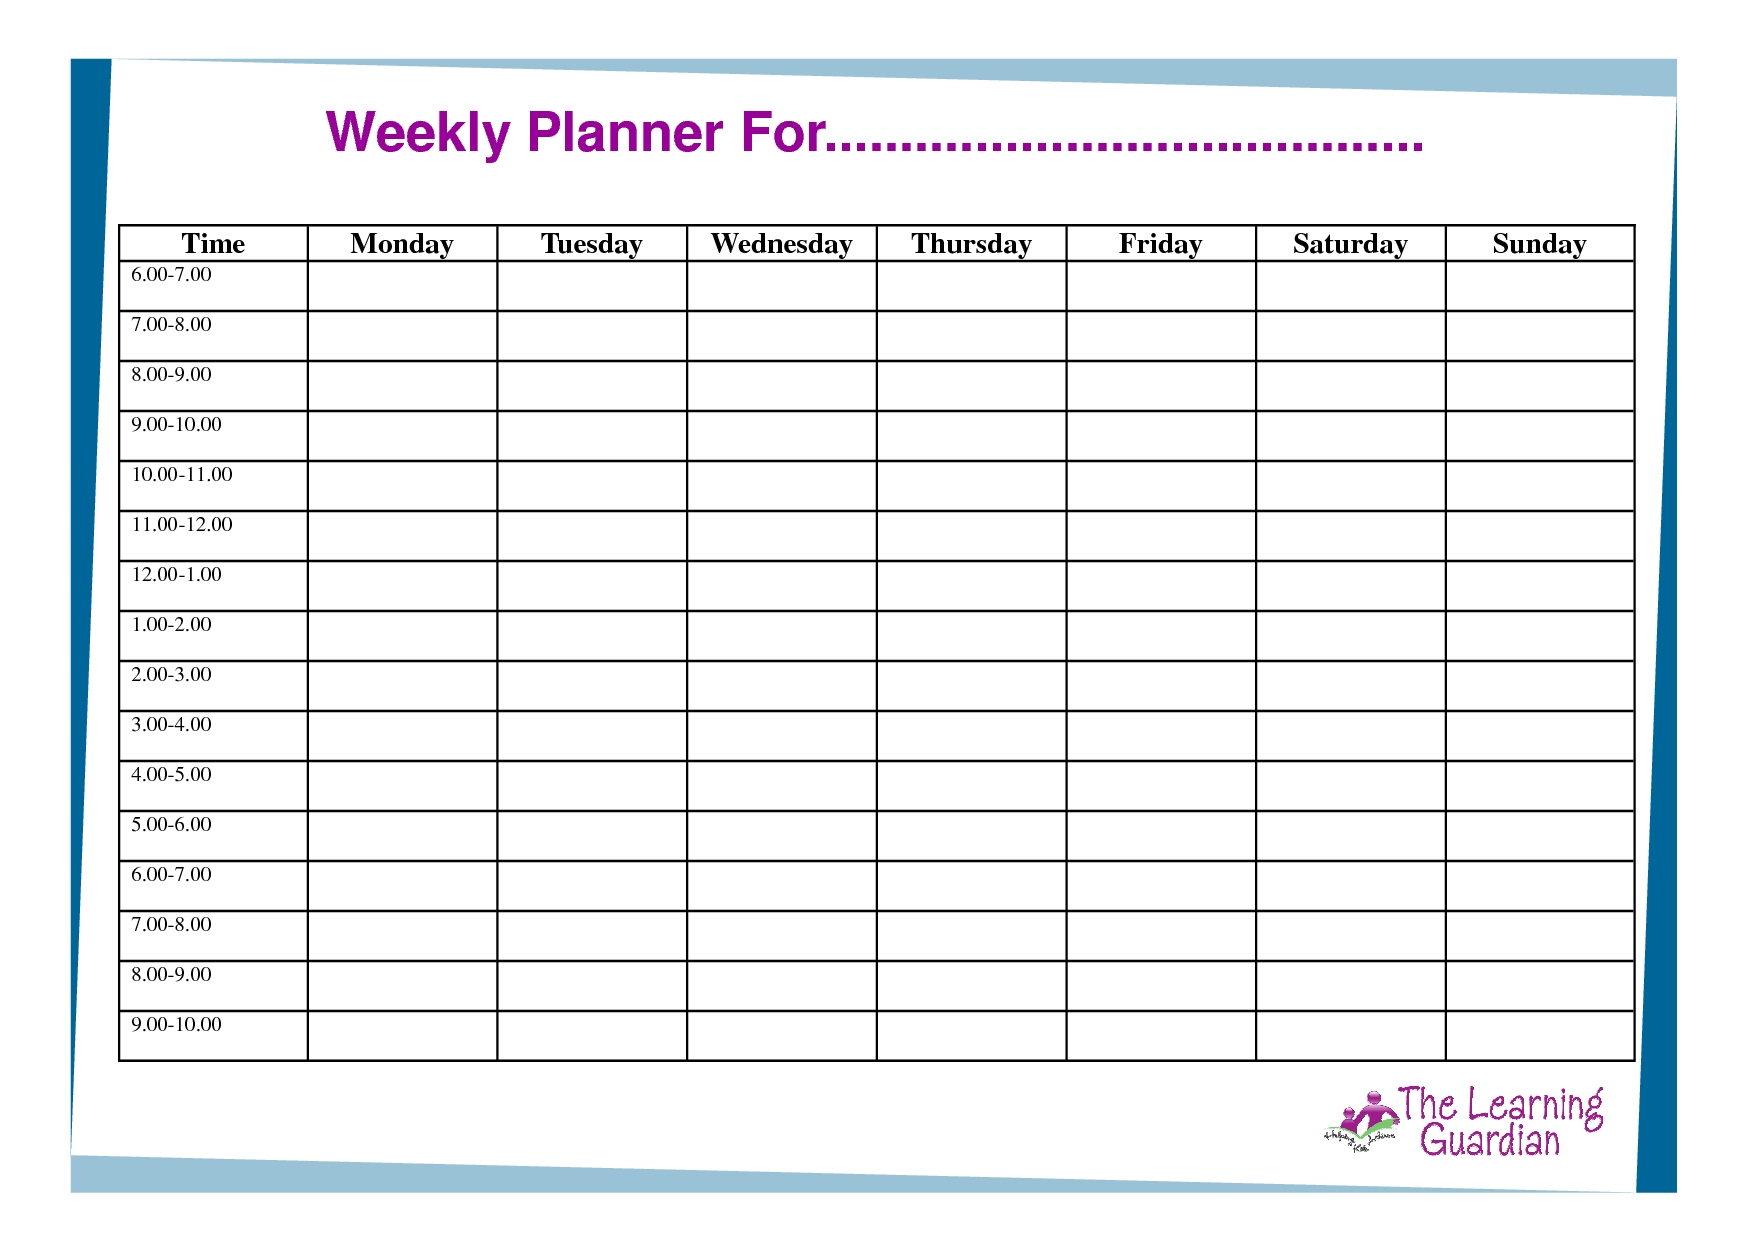 Weekly Calendar Template Monday To Friday | Calendar Free Printable Monday To Friday Calendar